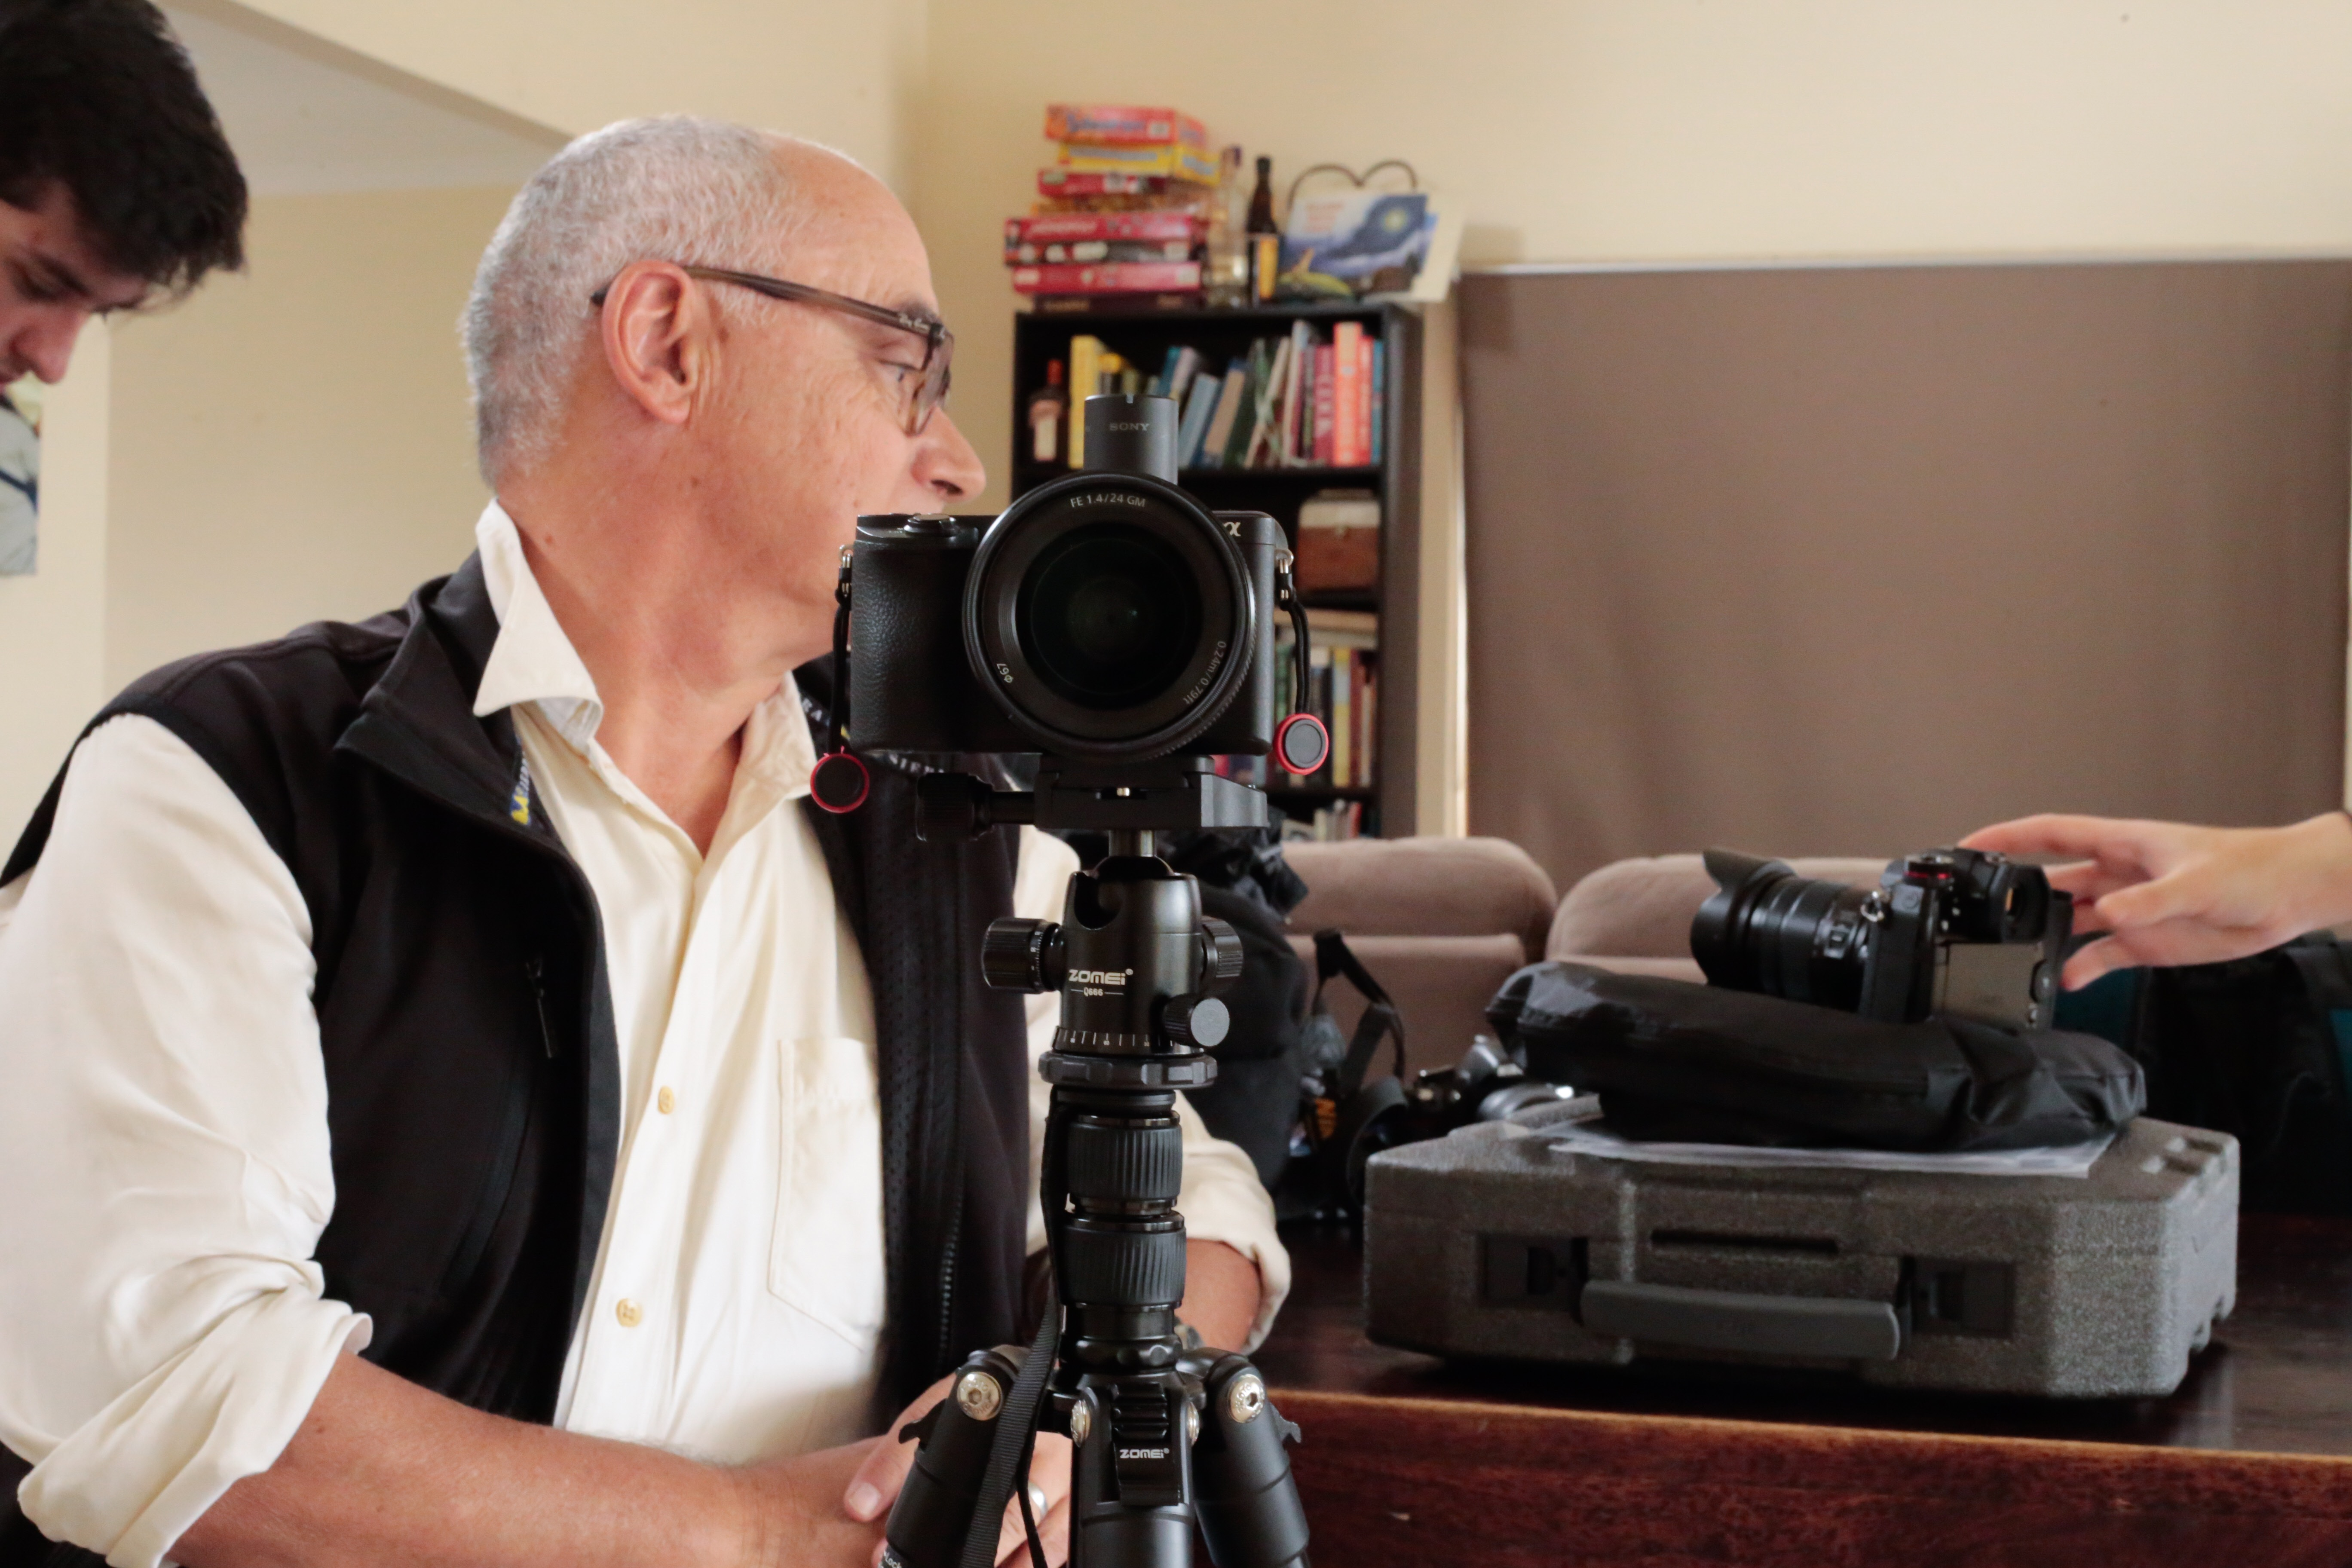 Documentay, Videography Services, Creative Videos, S.P. Films, Melbourne Videos, VIC